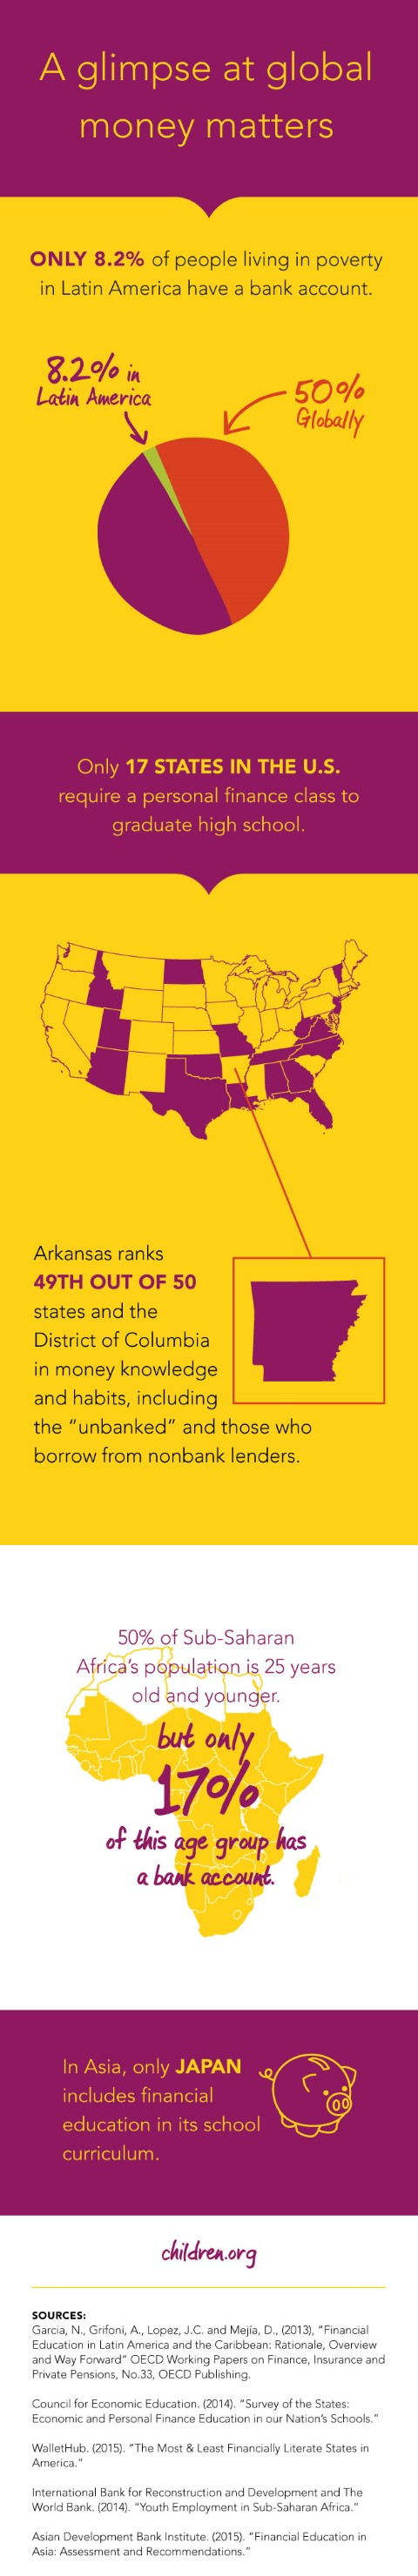 This infographic provides insight into global money problems — many in developing countries do not have bank accounts — and why it's important to start educating kids about money matters as soon as possible.